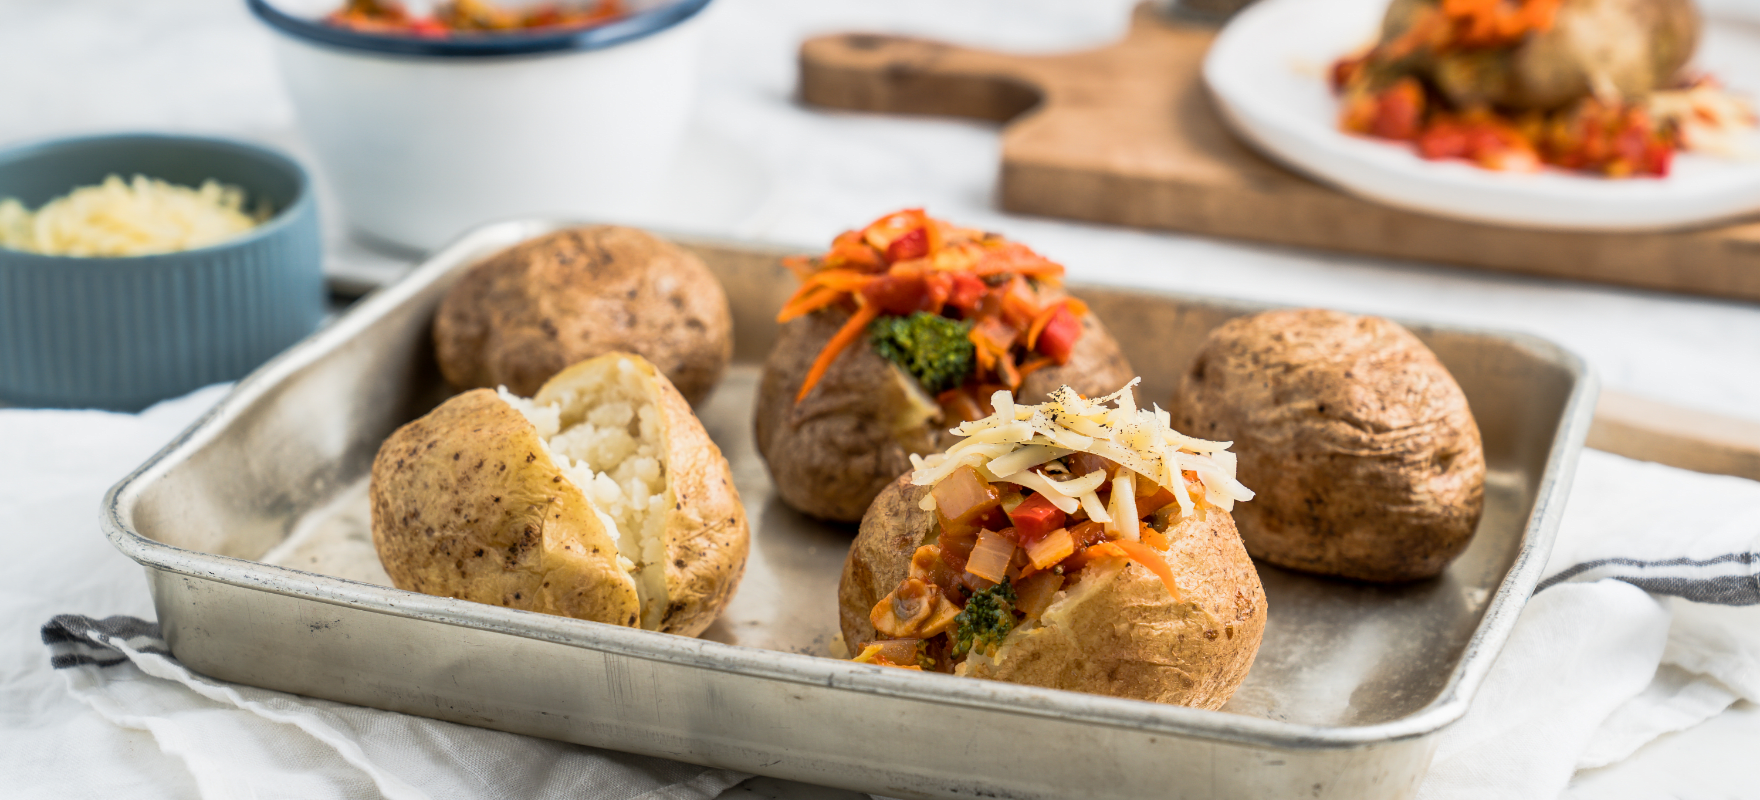 Baked potato with vegetable filling image 1